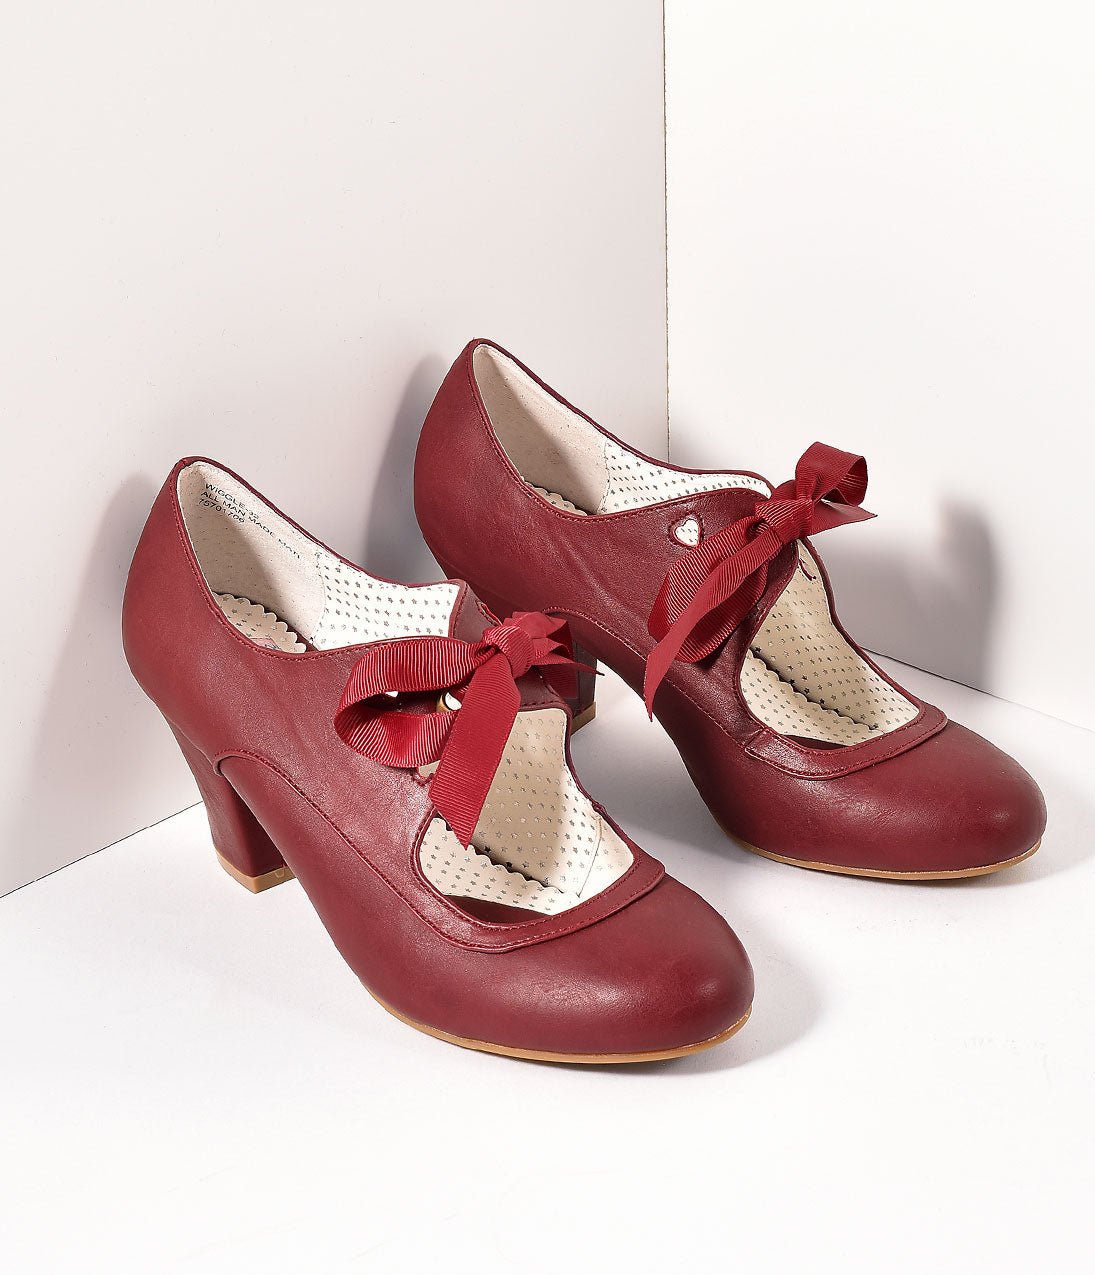 Rockabilly Shoes- Heels, Pumps, Boots, Flats Vintage Style Burgundy Leatherette Mary Jane Bow Wiggle Heels $58.00 AT vintagedancer.com